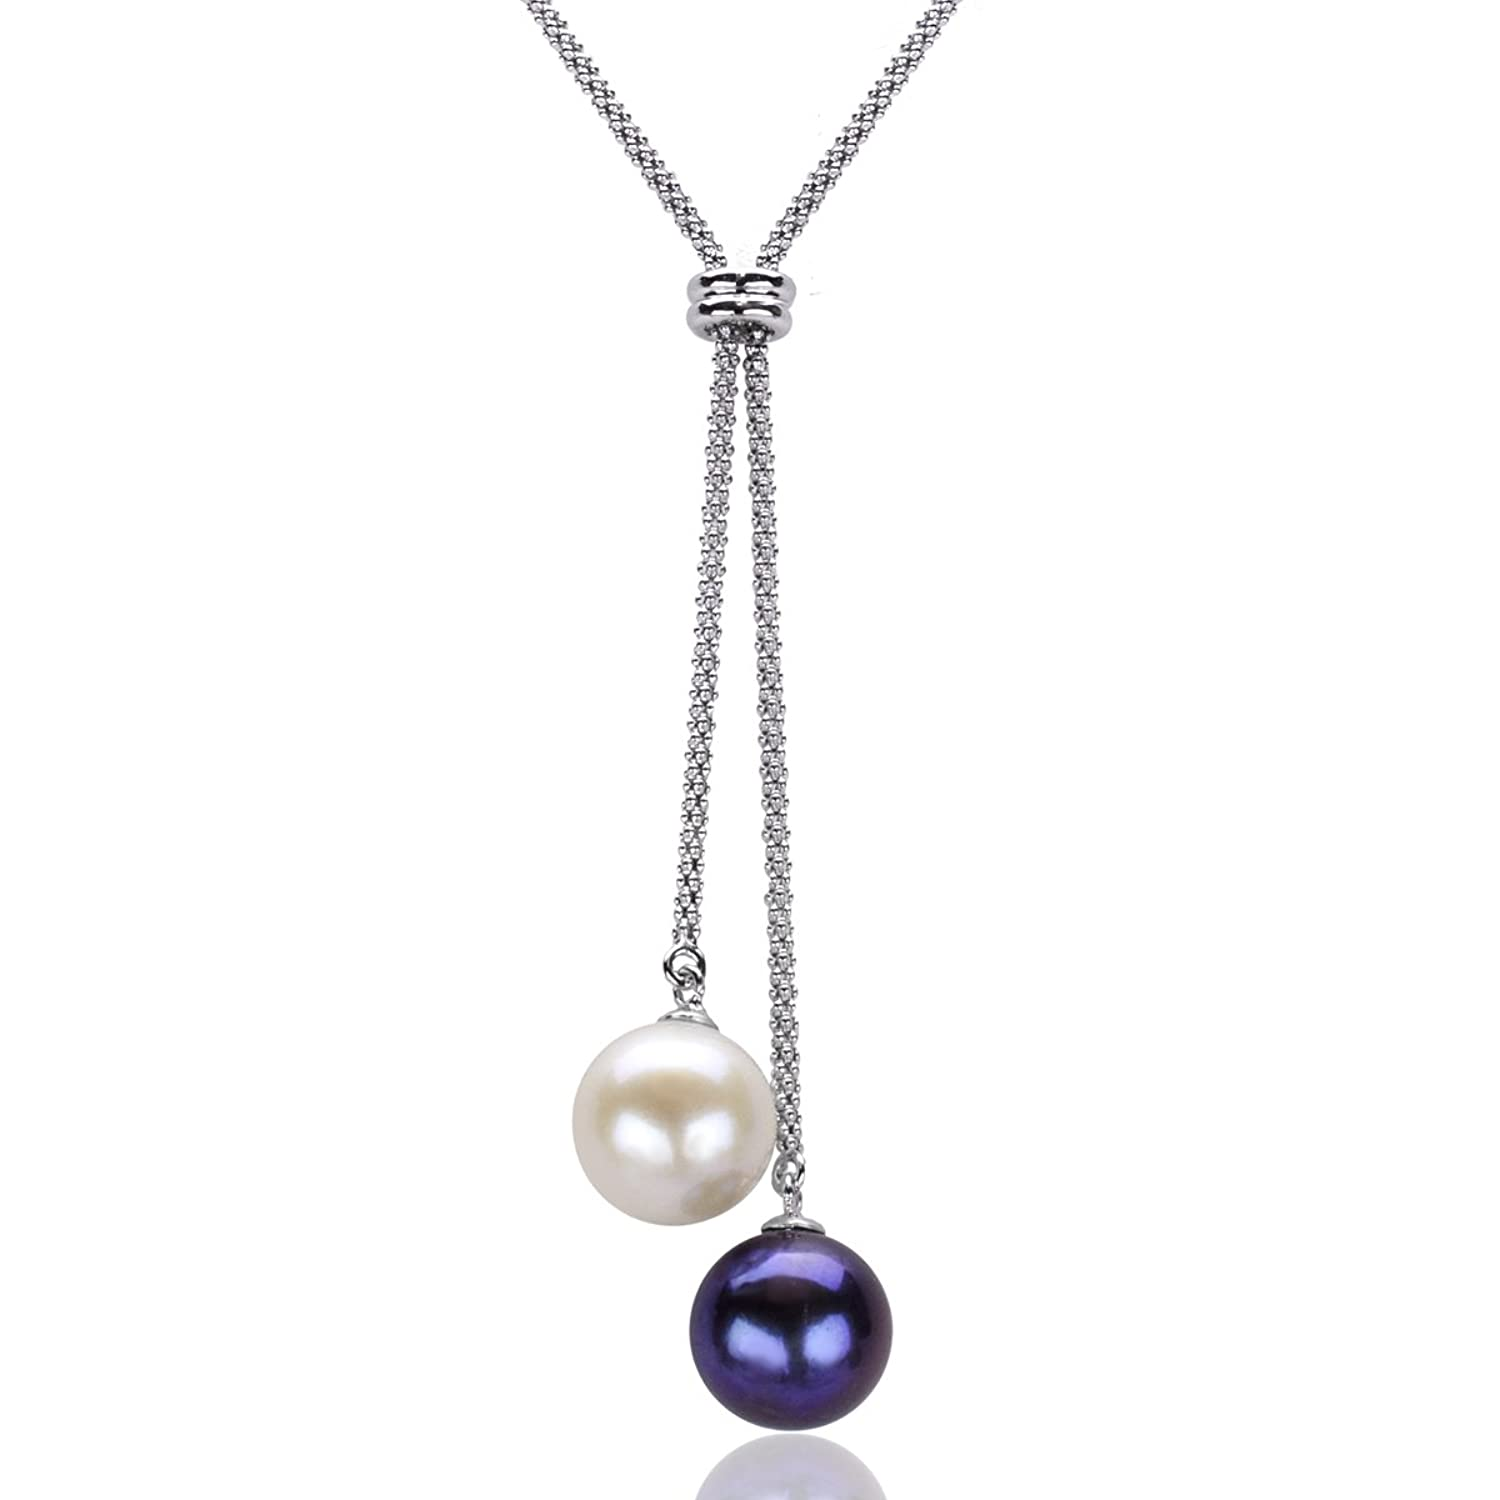 Sterling Silver 10-10.5mm White and Dyed-black Freshwater Cultured Pearl Popcorn Chain Necklace, 16""